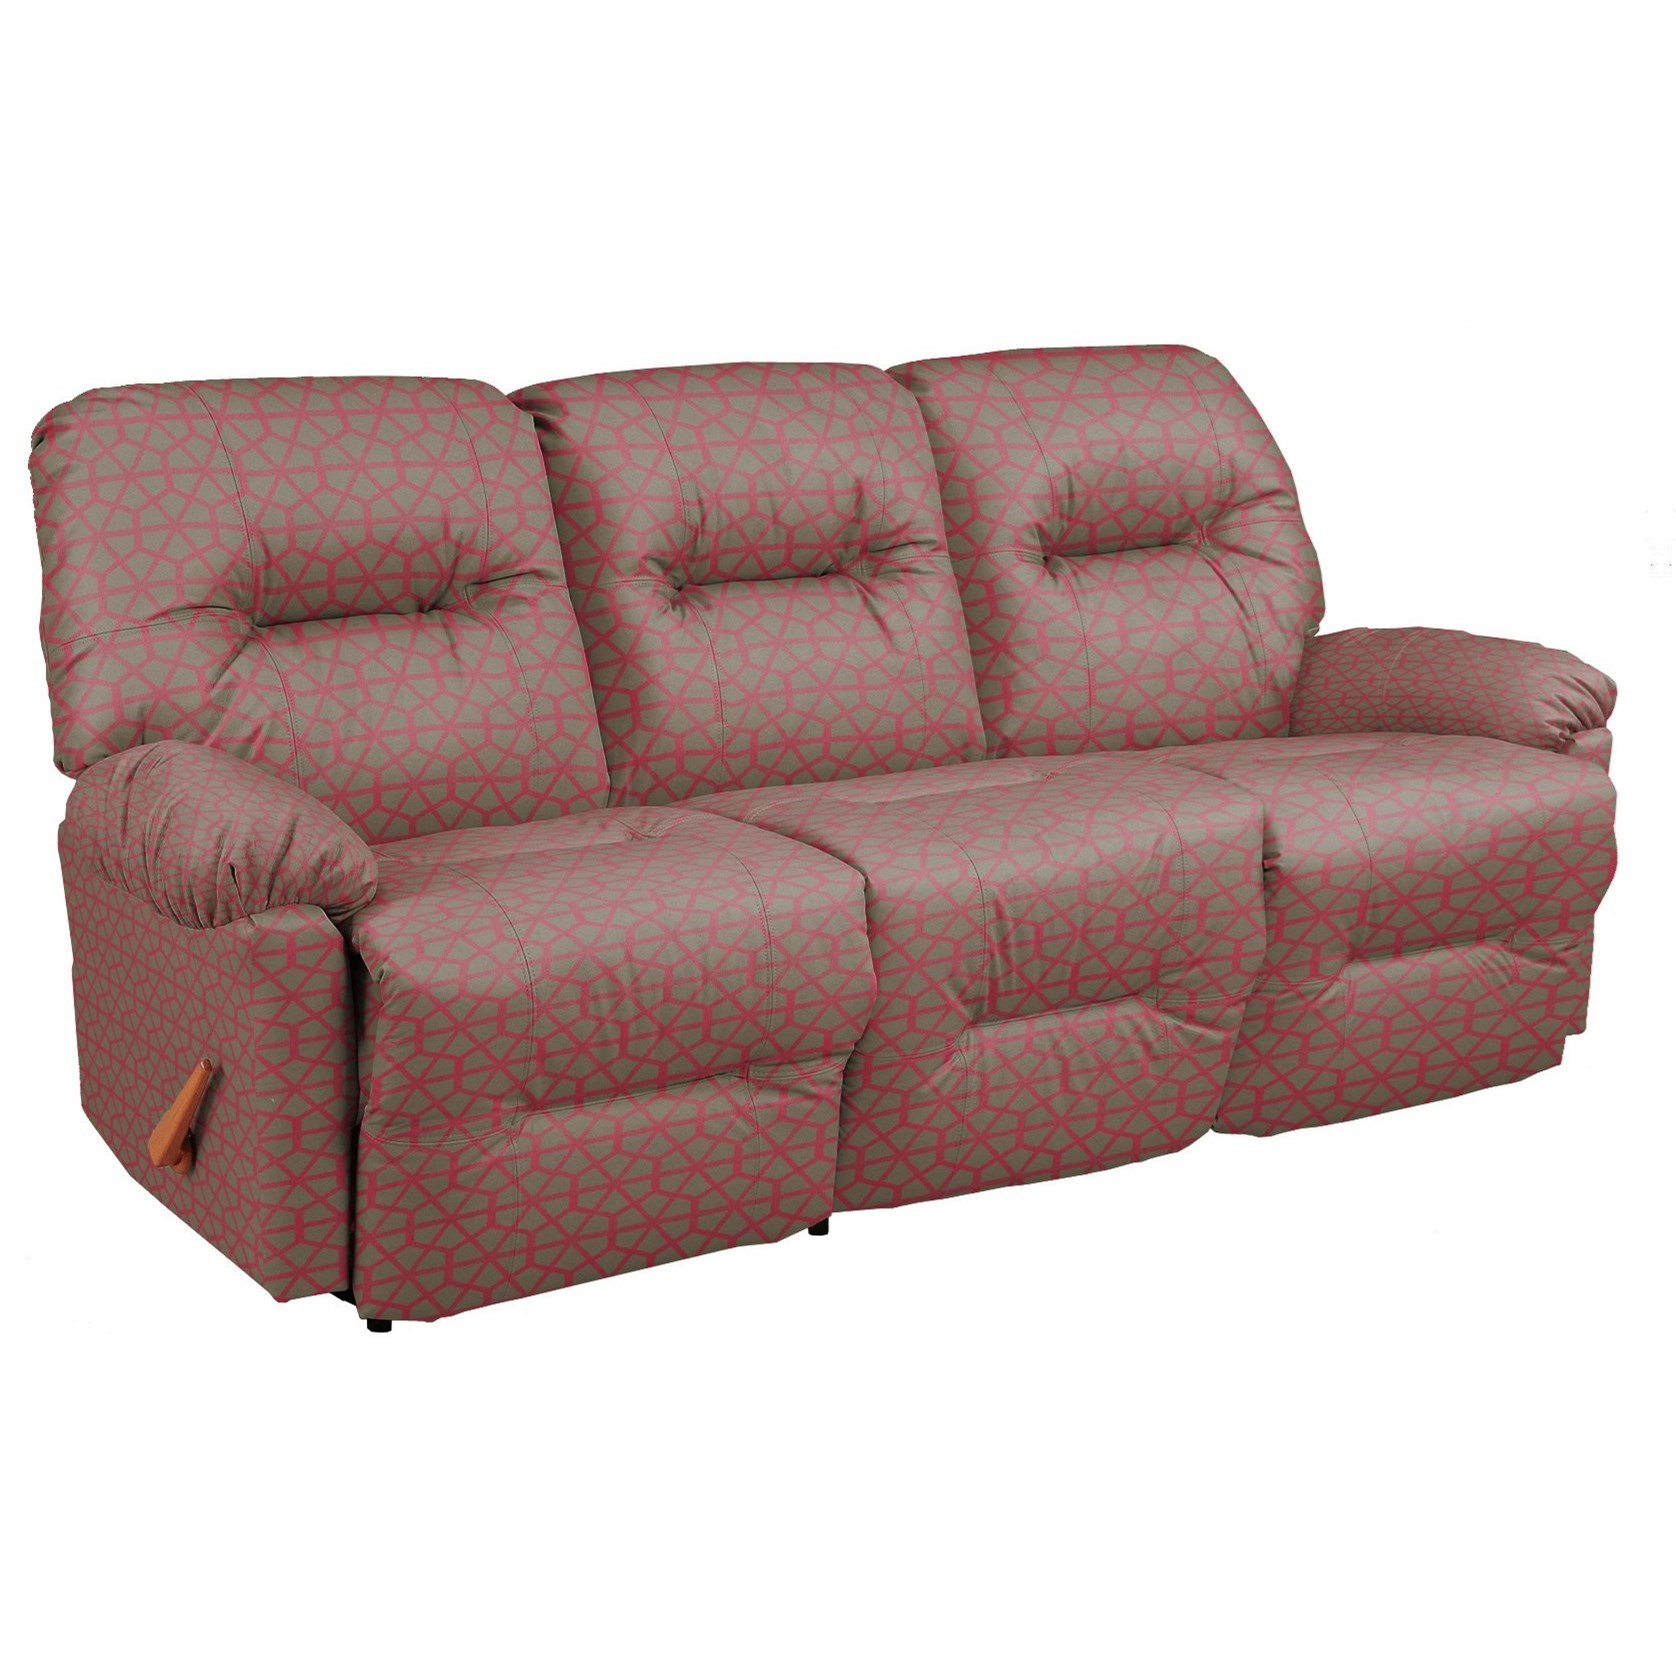 Best Home Furnishings Redford Reclining Sofa - Item Number: -679135843-29098